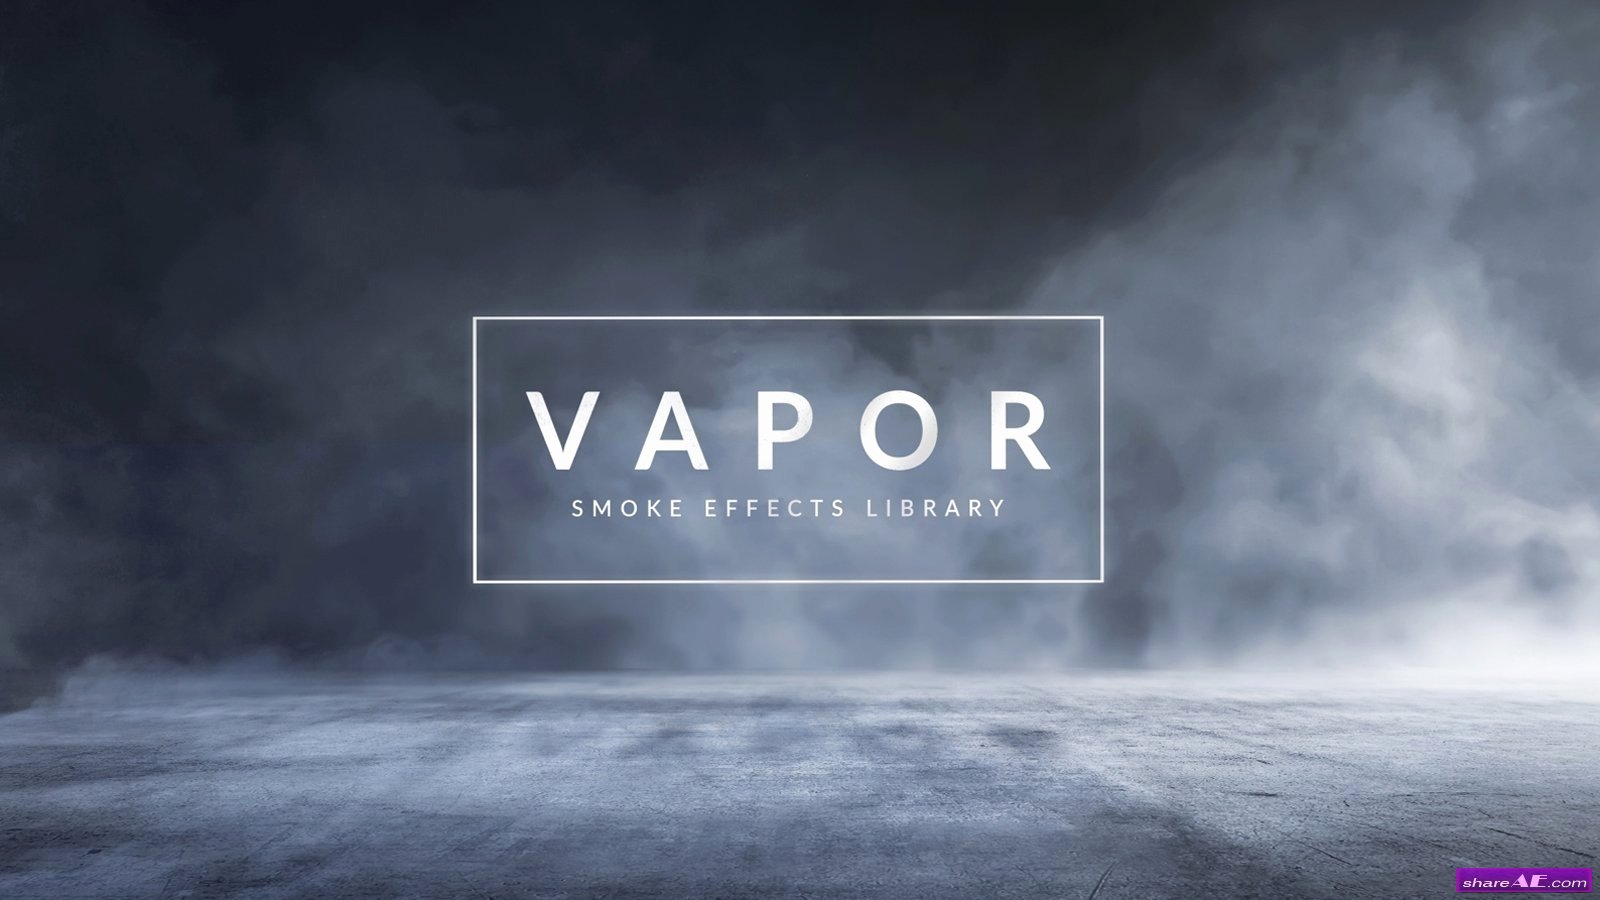 After Effects Lyric Video Template Luxury Vapor 100 Smoke & Fog Effects Rocketstock Free after